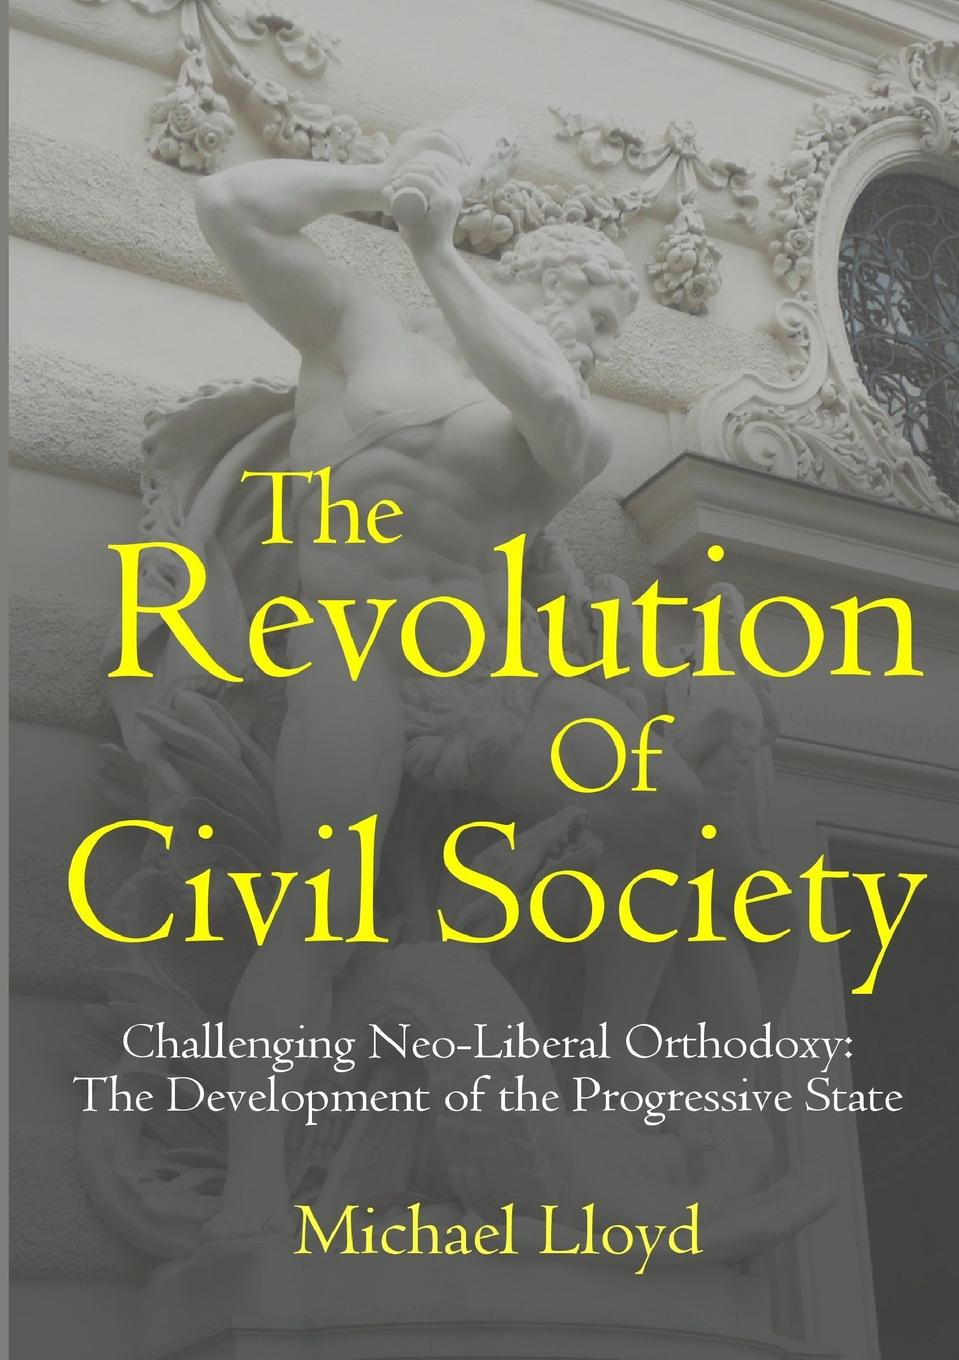 The Revolution of Civil Society. Challenging Neo-Liberal Orthodoxy. The Development of the Progressive State In this book, Michael Lloyd sets out a comprehensive analysis...